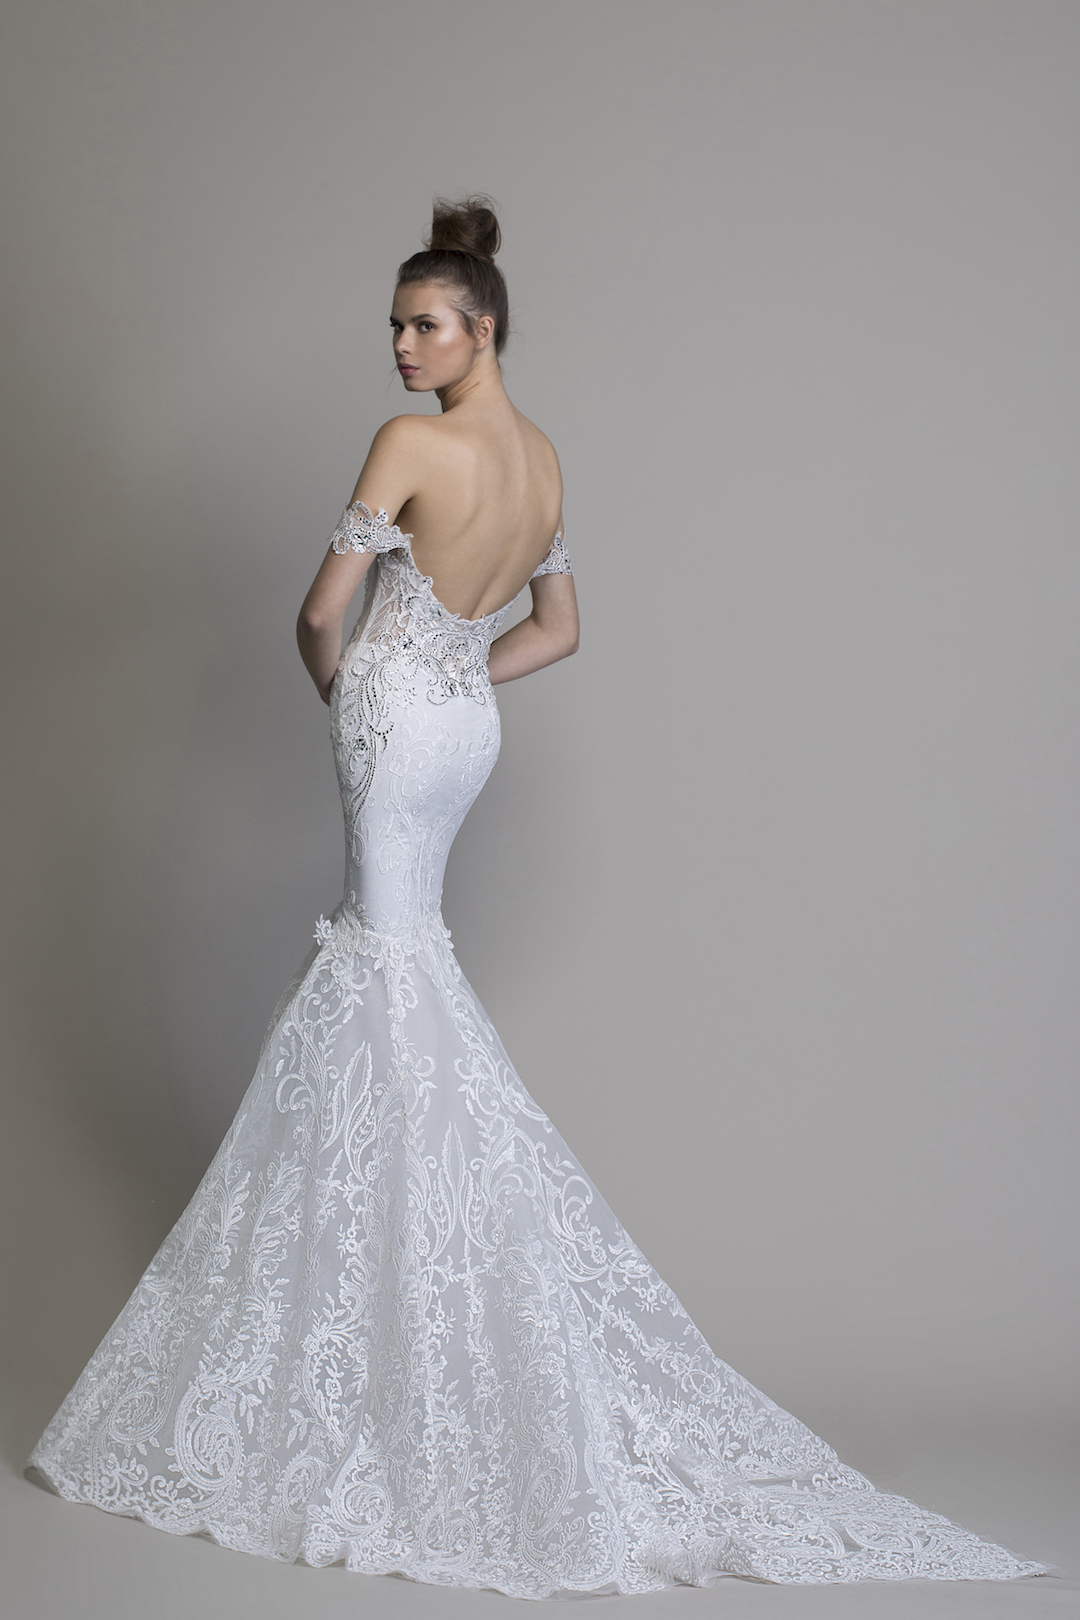 Mermaid Wedding Dresses with Crystals